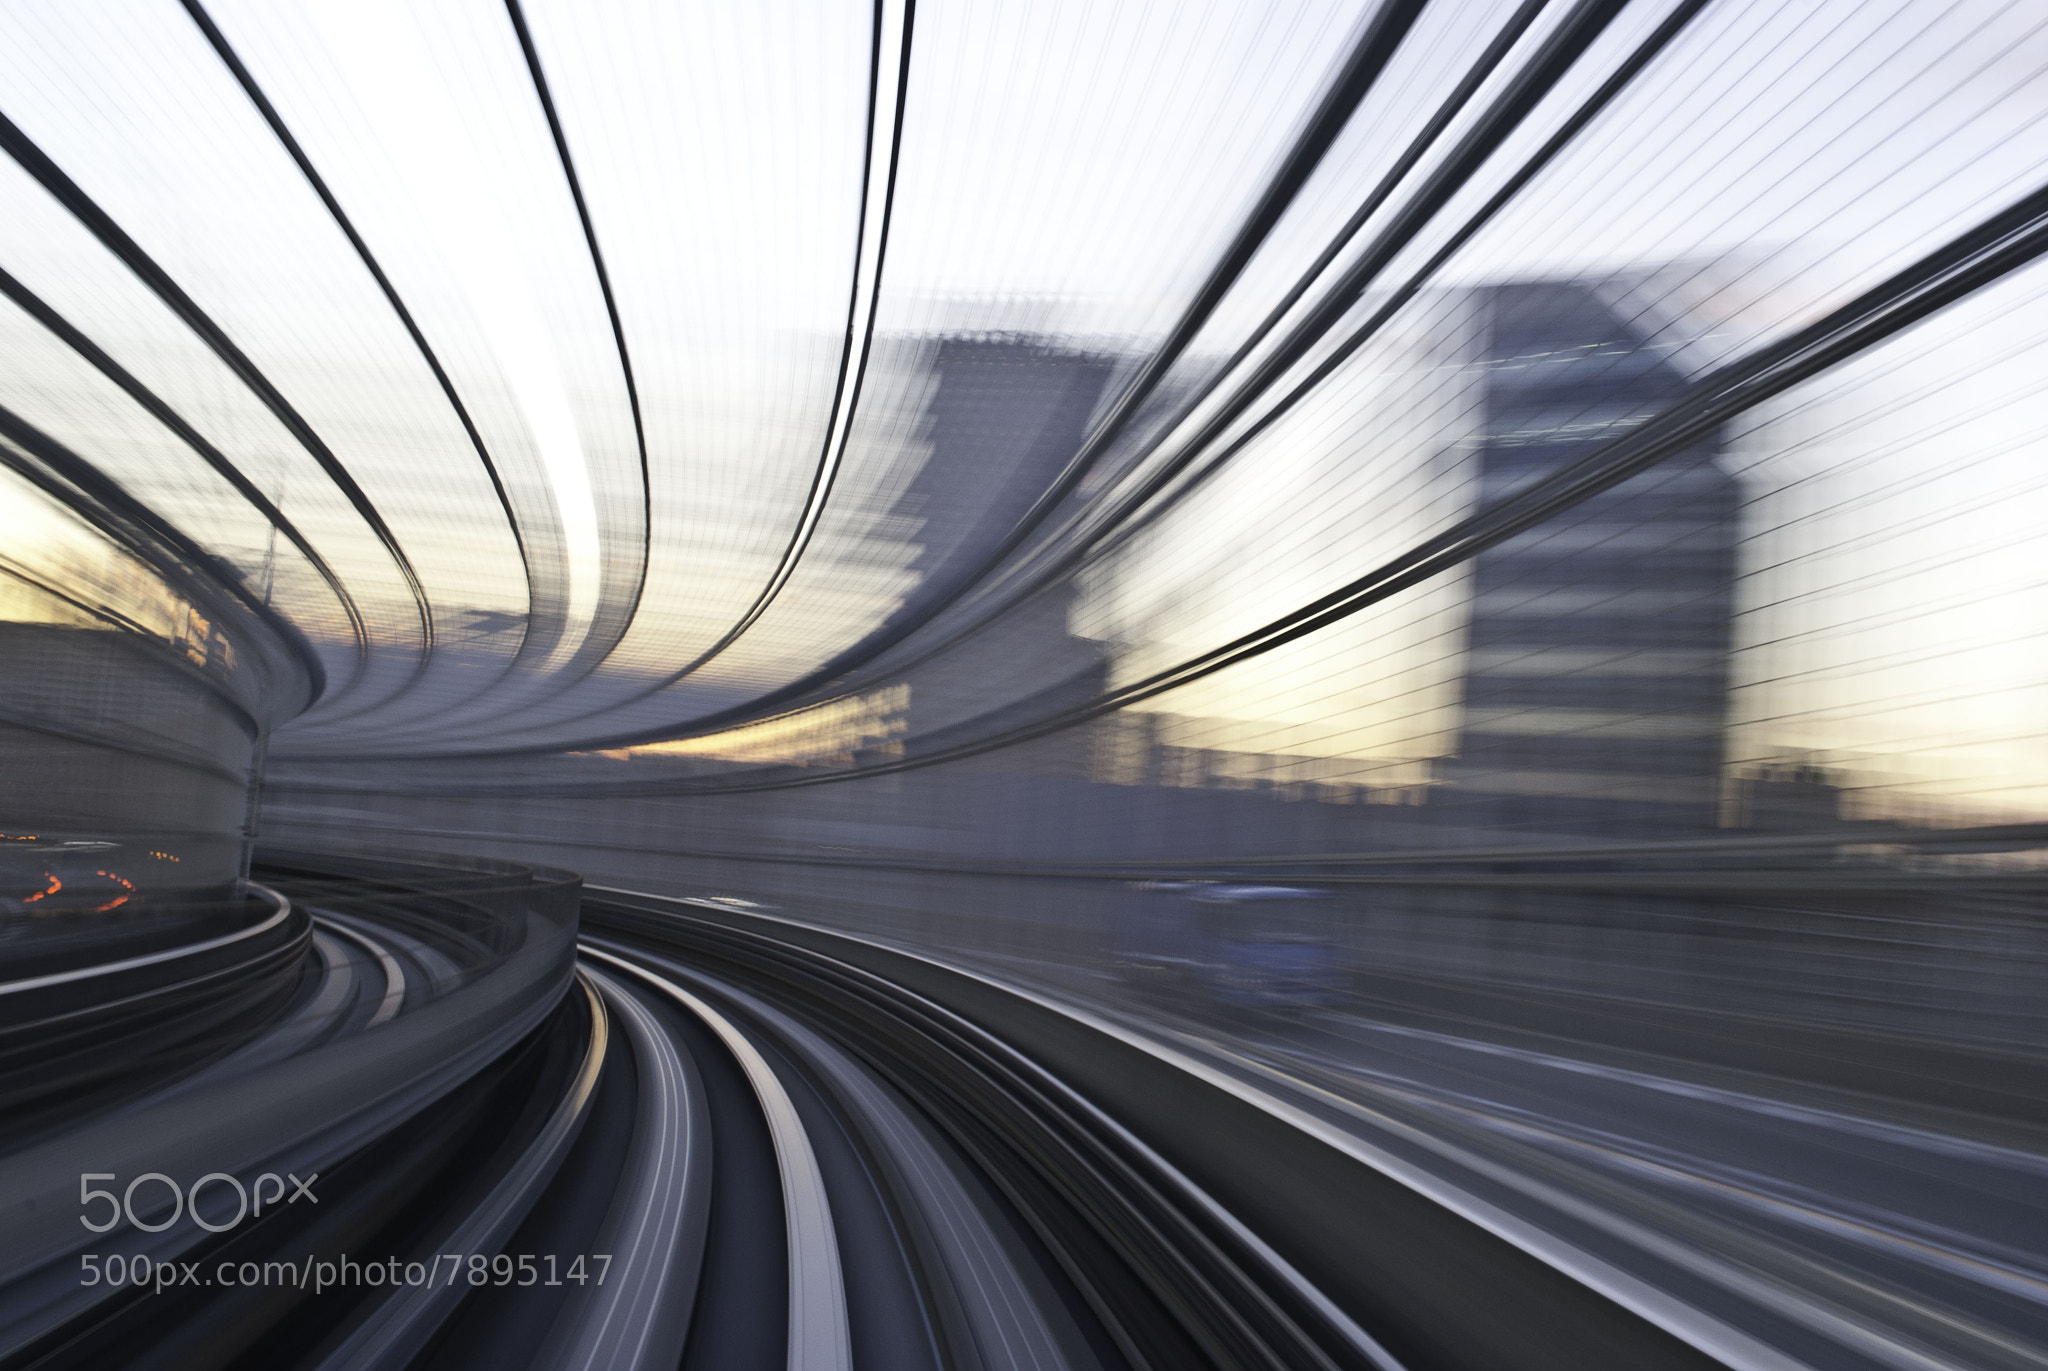 Photograph Yurikamome Line in Tokyo by Teddy  on 500px